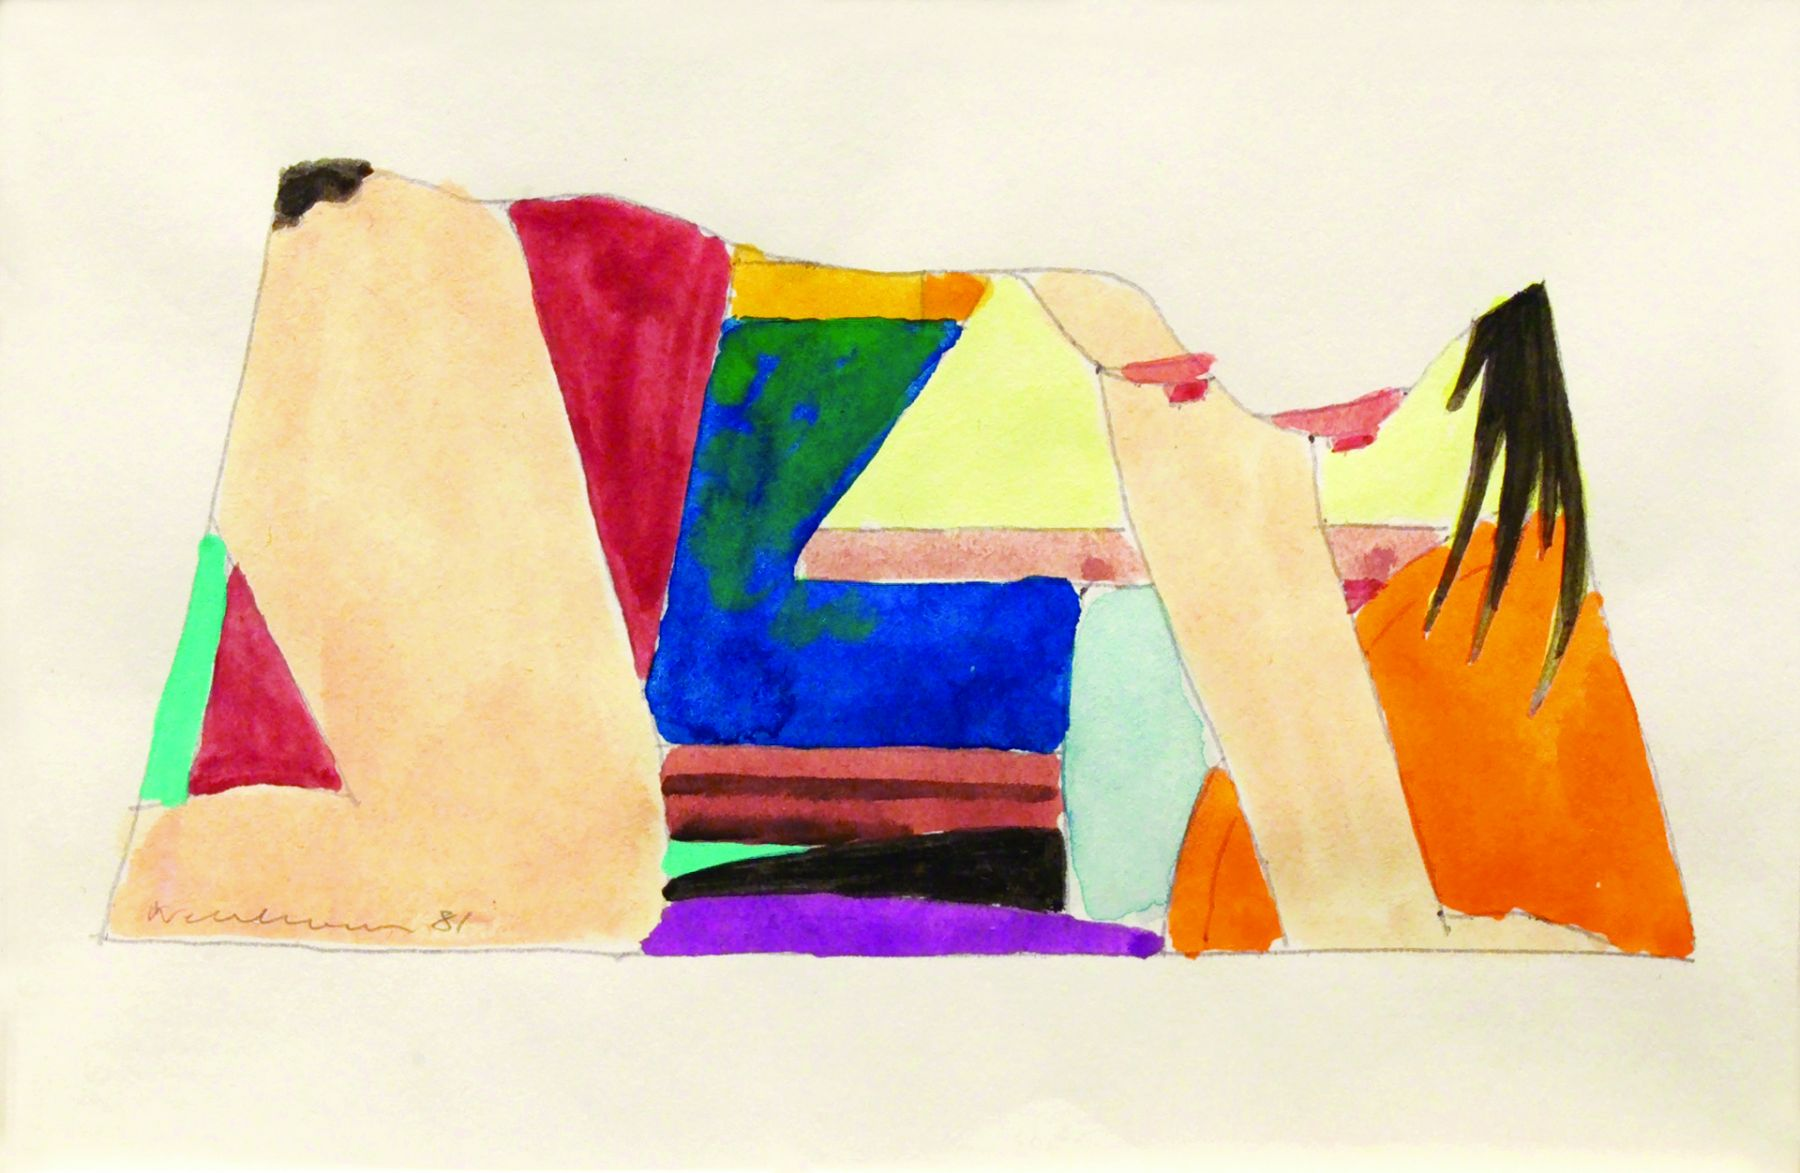 Tom Wesselmann, Study for Drop Out, 1981, liquitex on paper, 3 1/2 x 5 1/4 inches